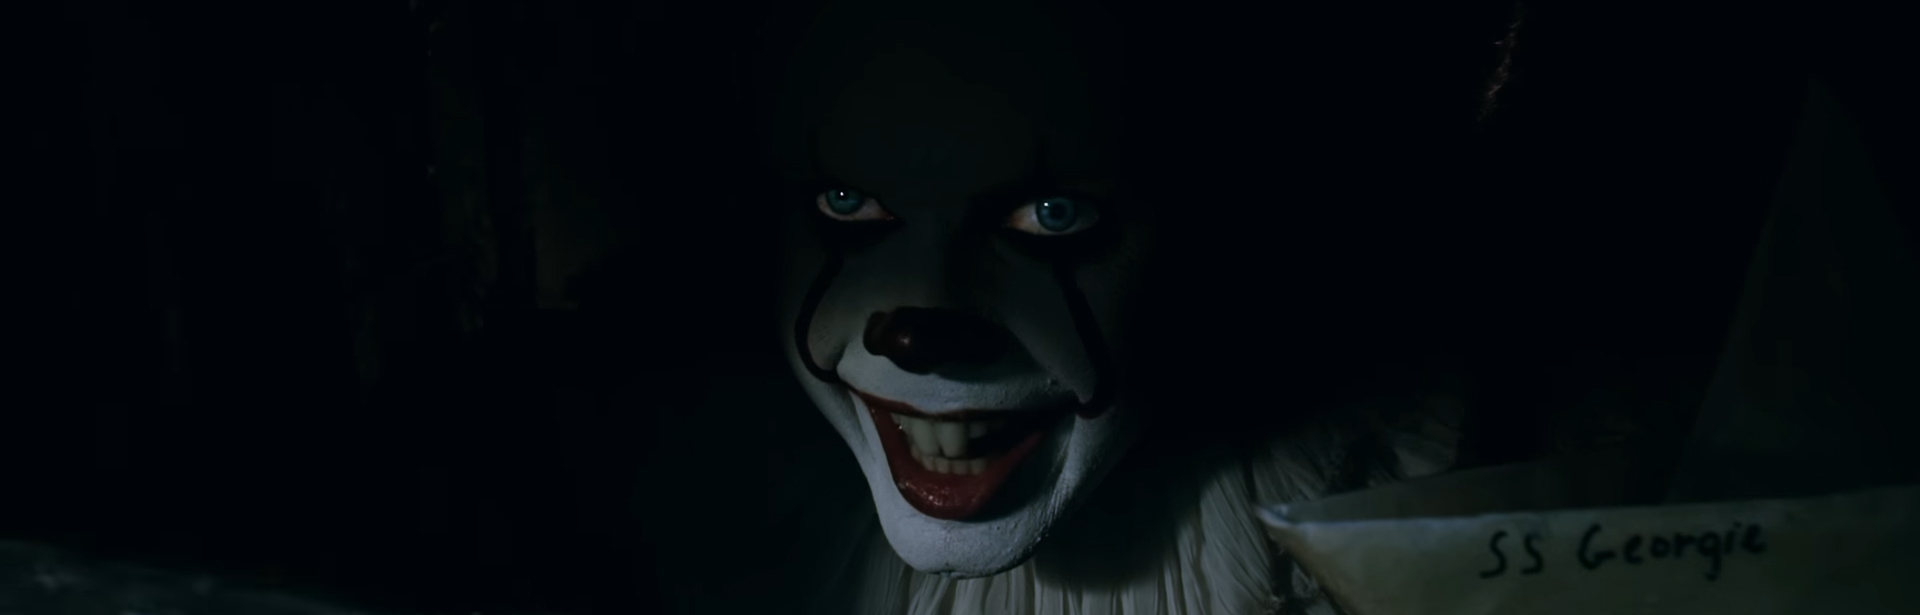 It. Image Credit: Warner Bros.